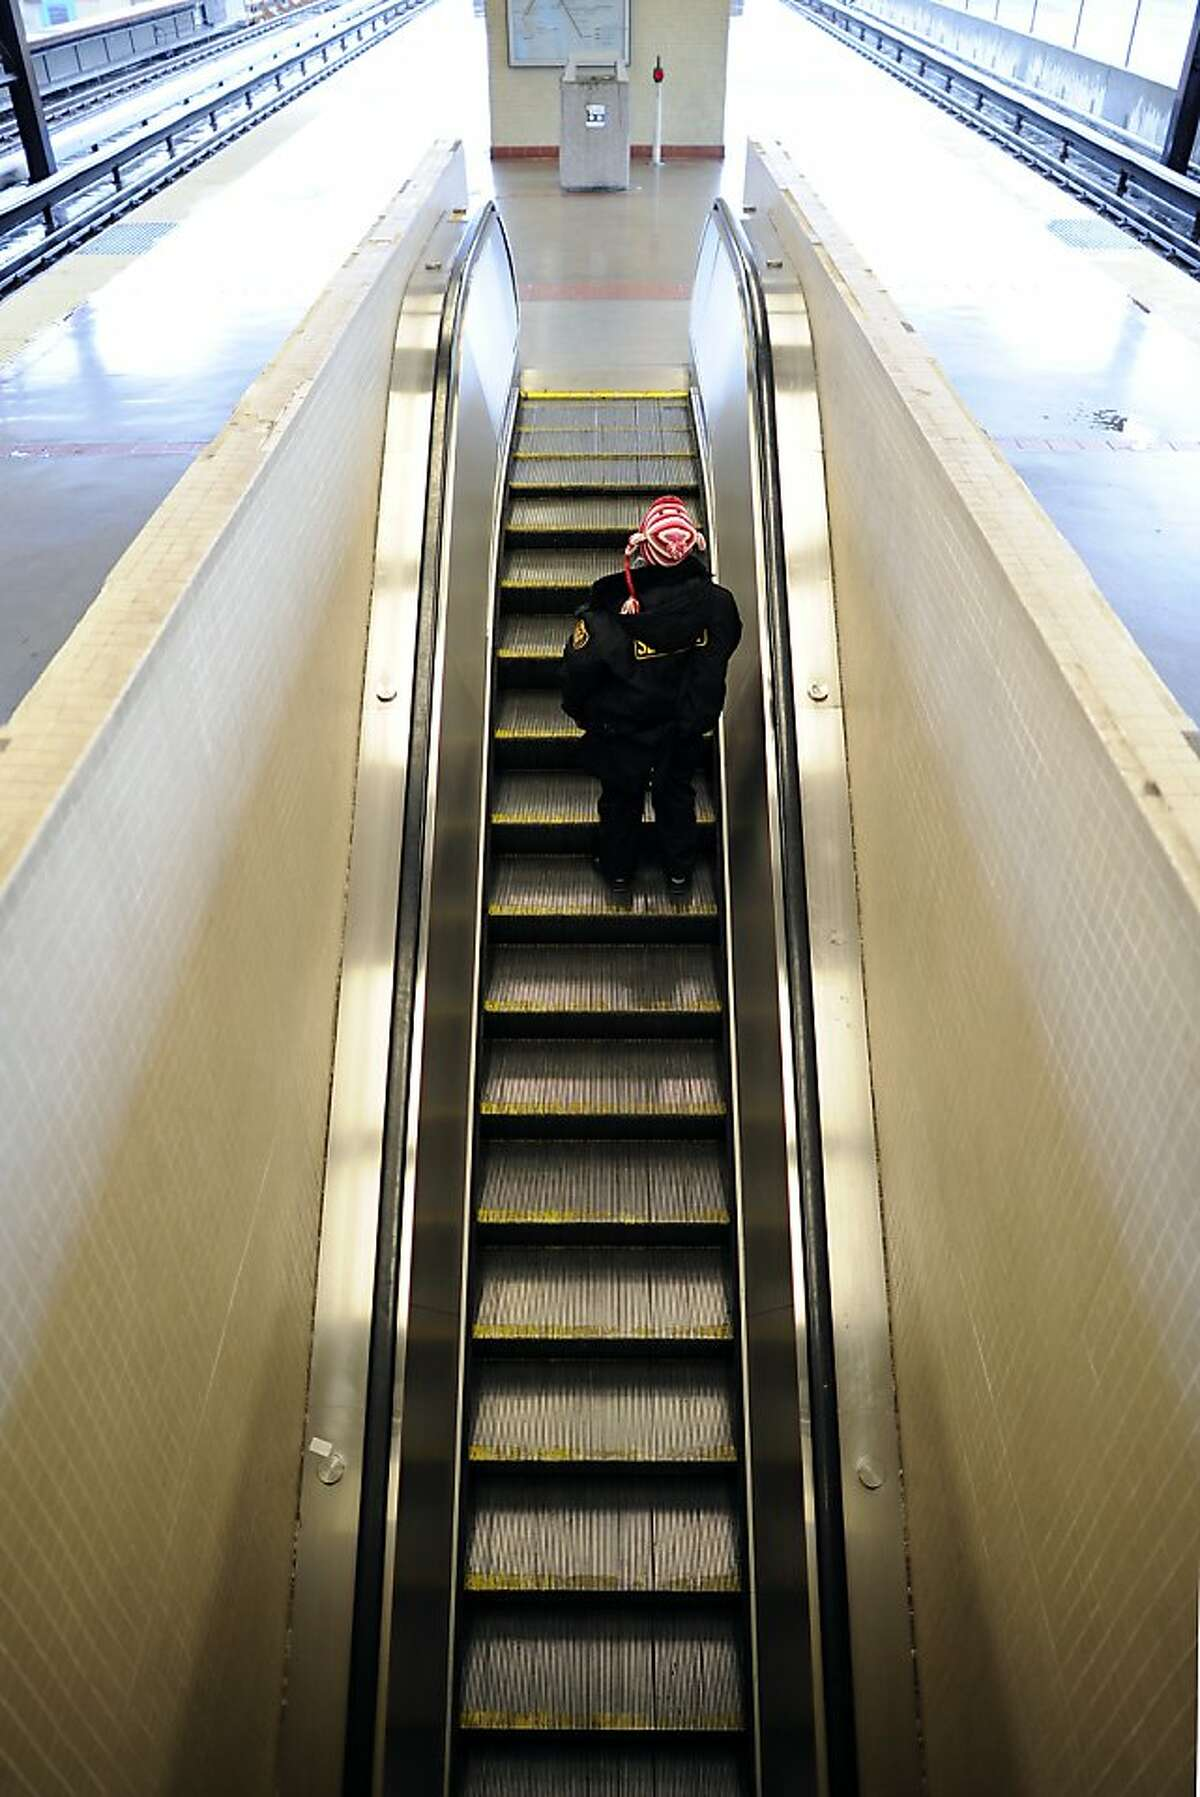 Passengers are seen on the escalators at the MacArthur BART stop in Oakland, CA Friday December 21st, 2012.